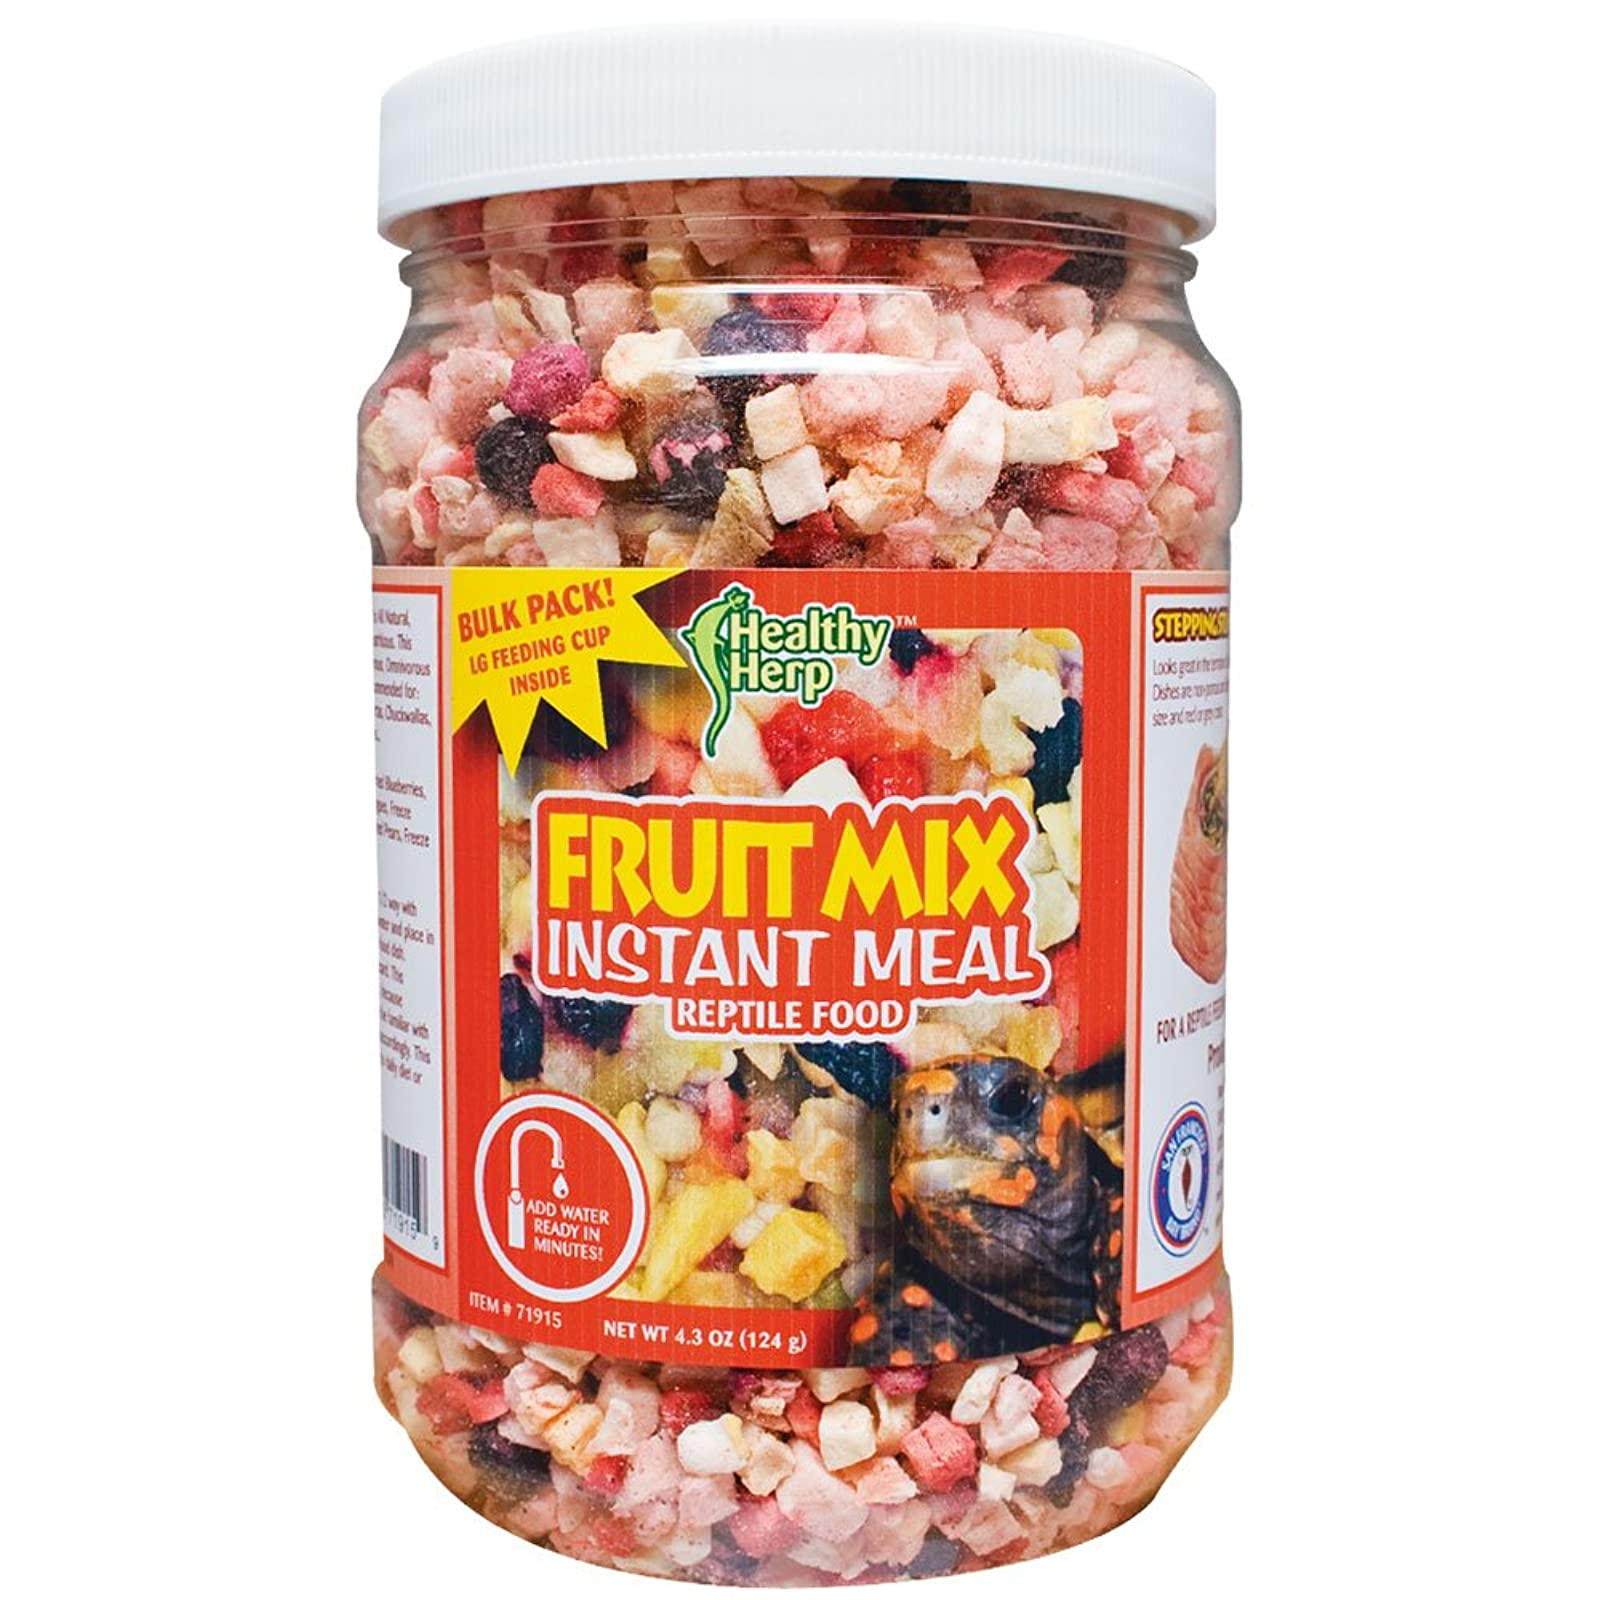 Healthy Herp Fruit Mix Instant Meal 3. - 4